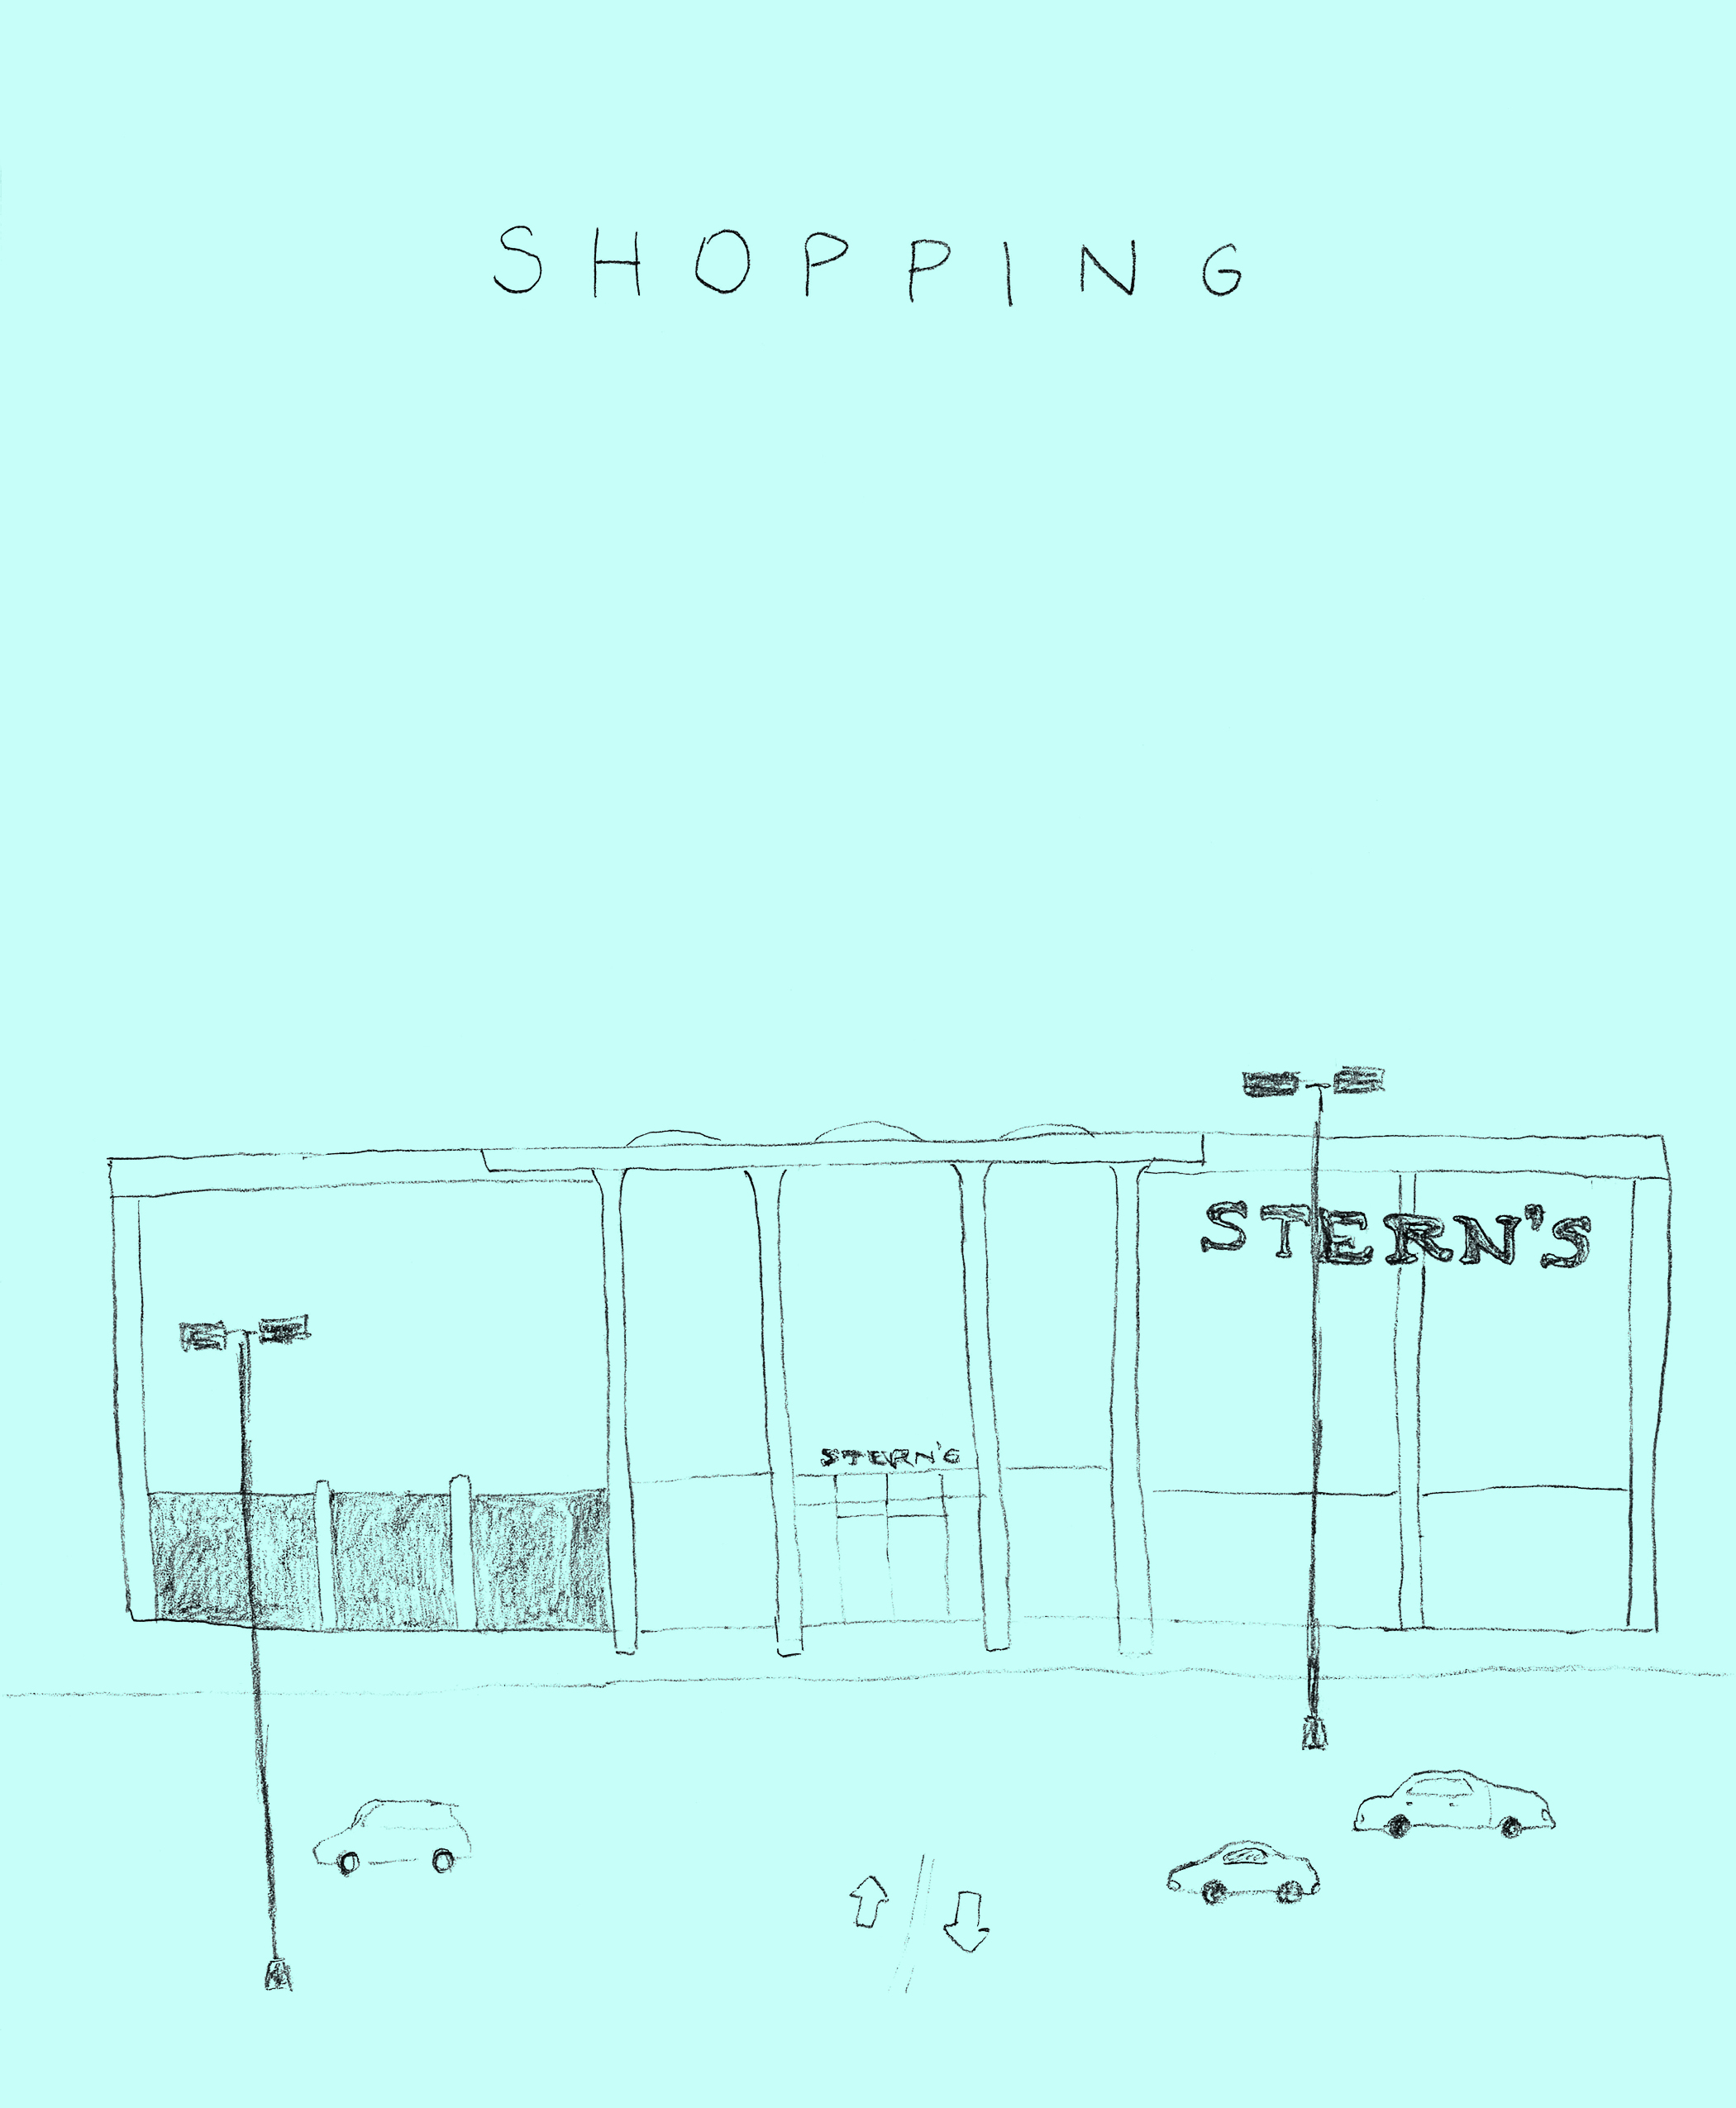 Peltz_Shopping_Page_1_with color.jpg